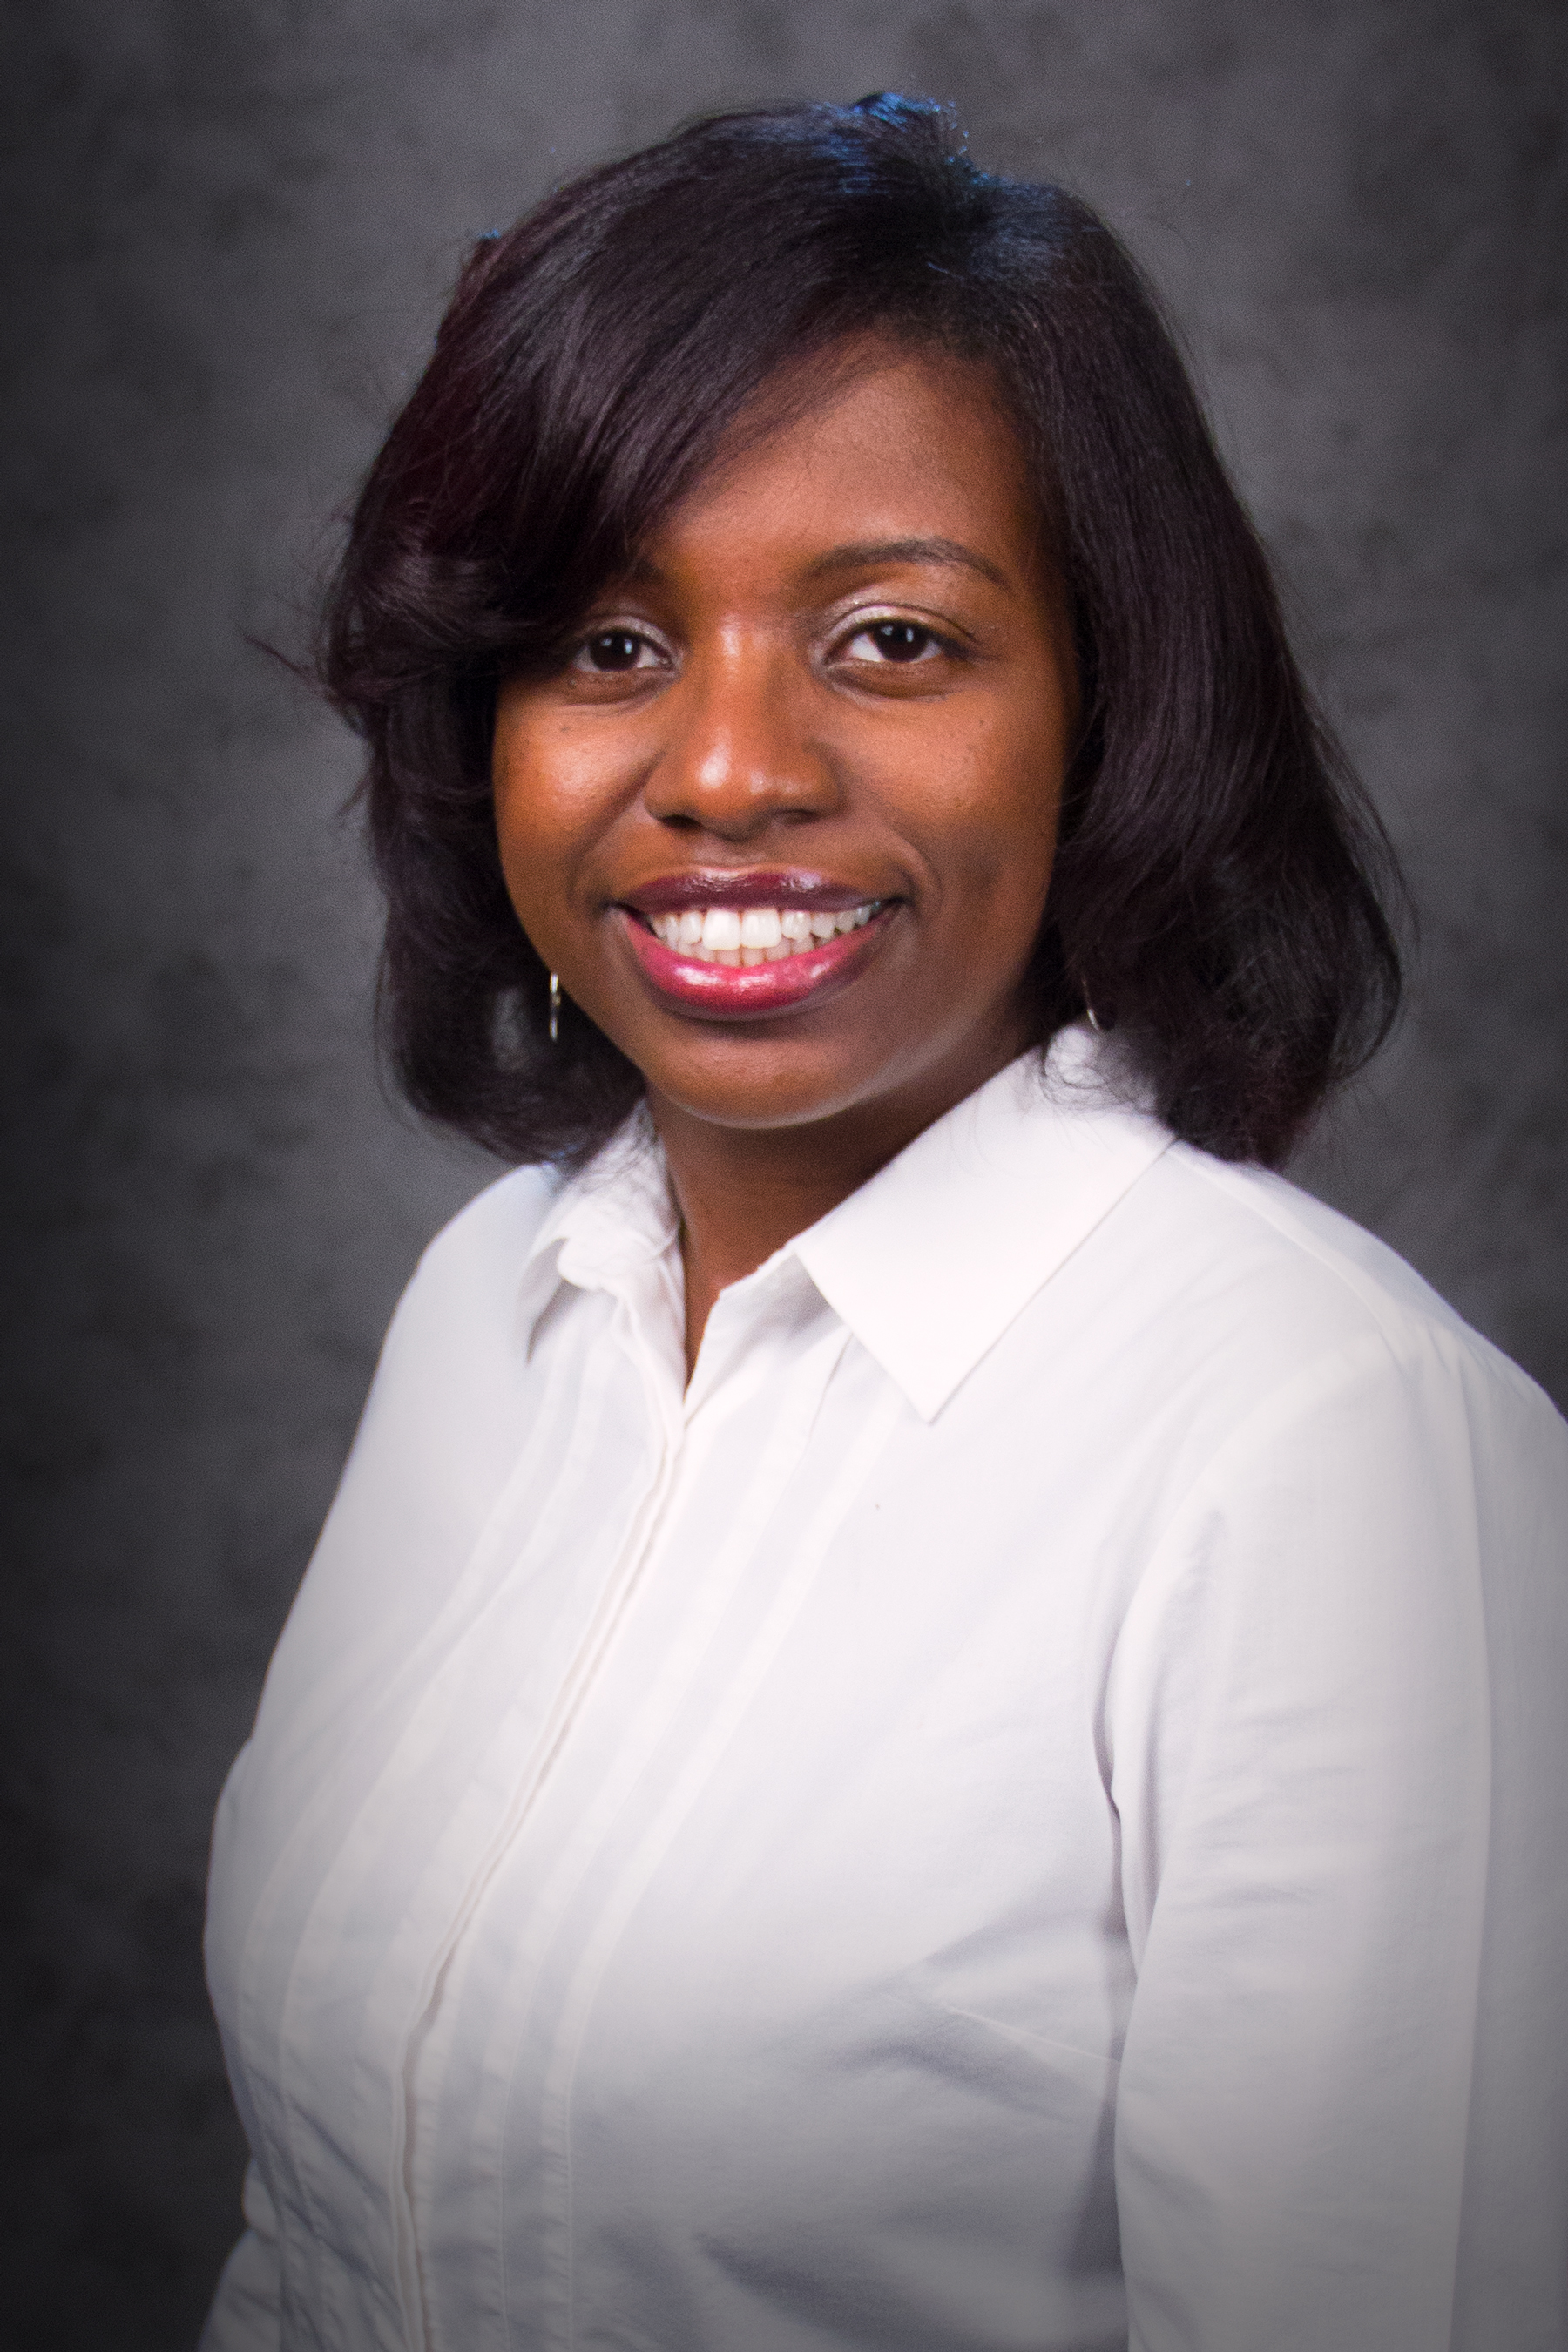 Dr. Ashley Morris (headshot), Dean Business & Professional Services